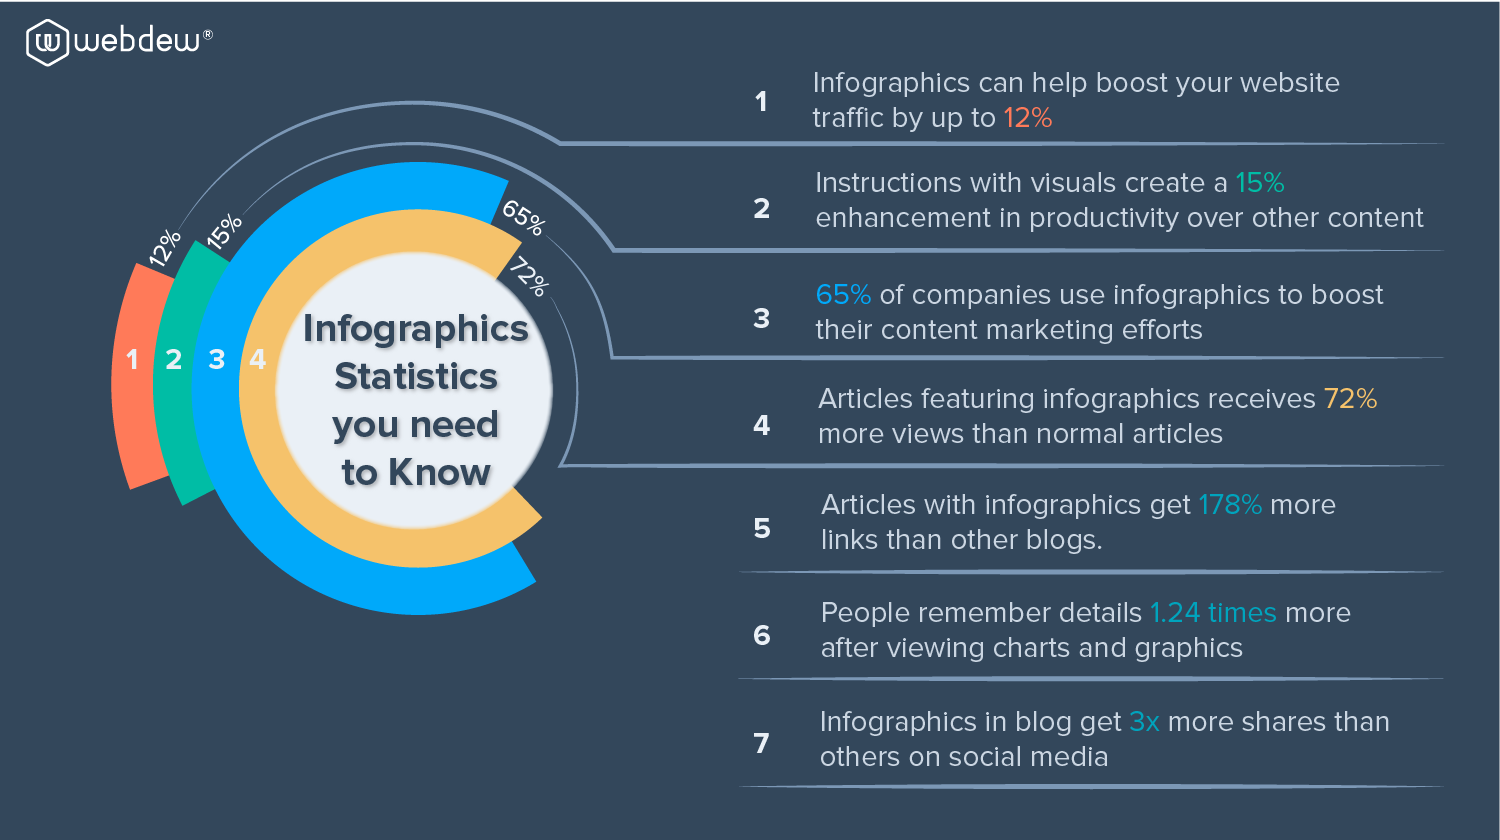 infographics-statistics-you-need-to-know-1